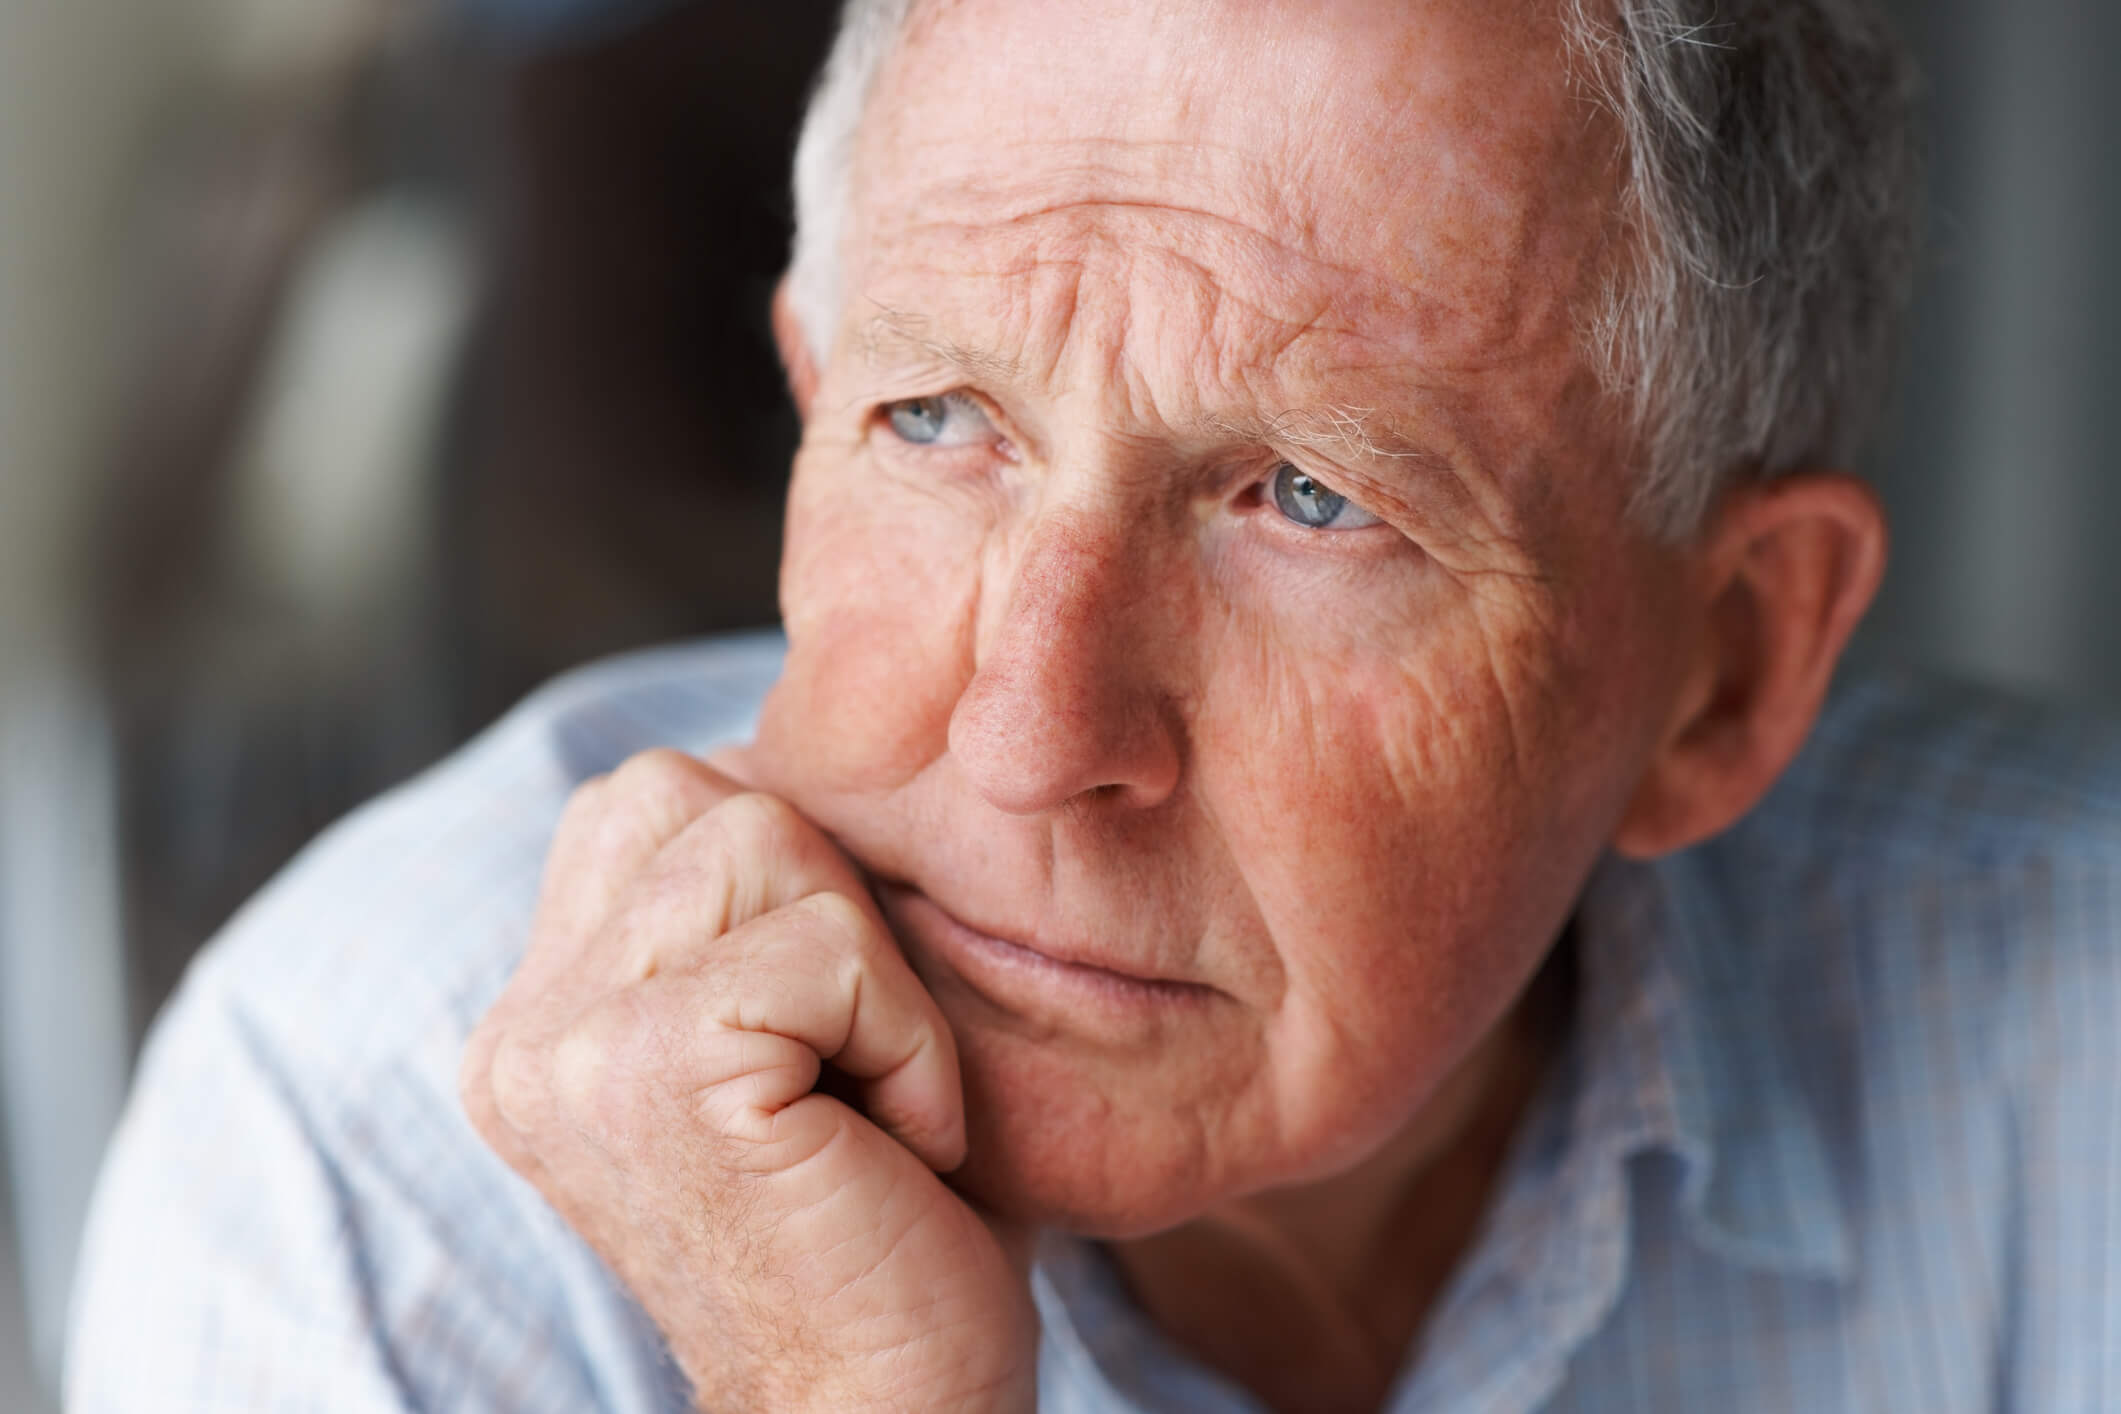 Senior man with depression sitting with his face on his fist.